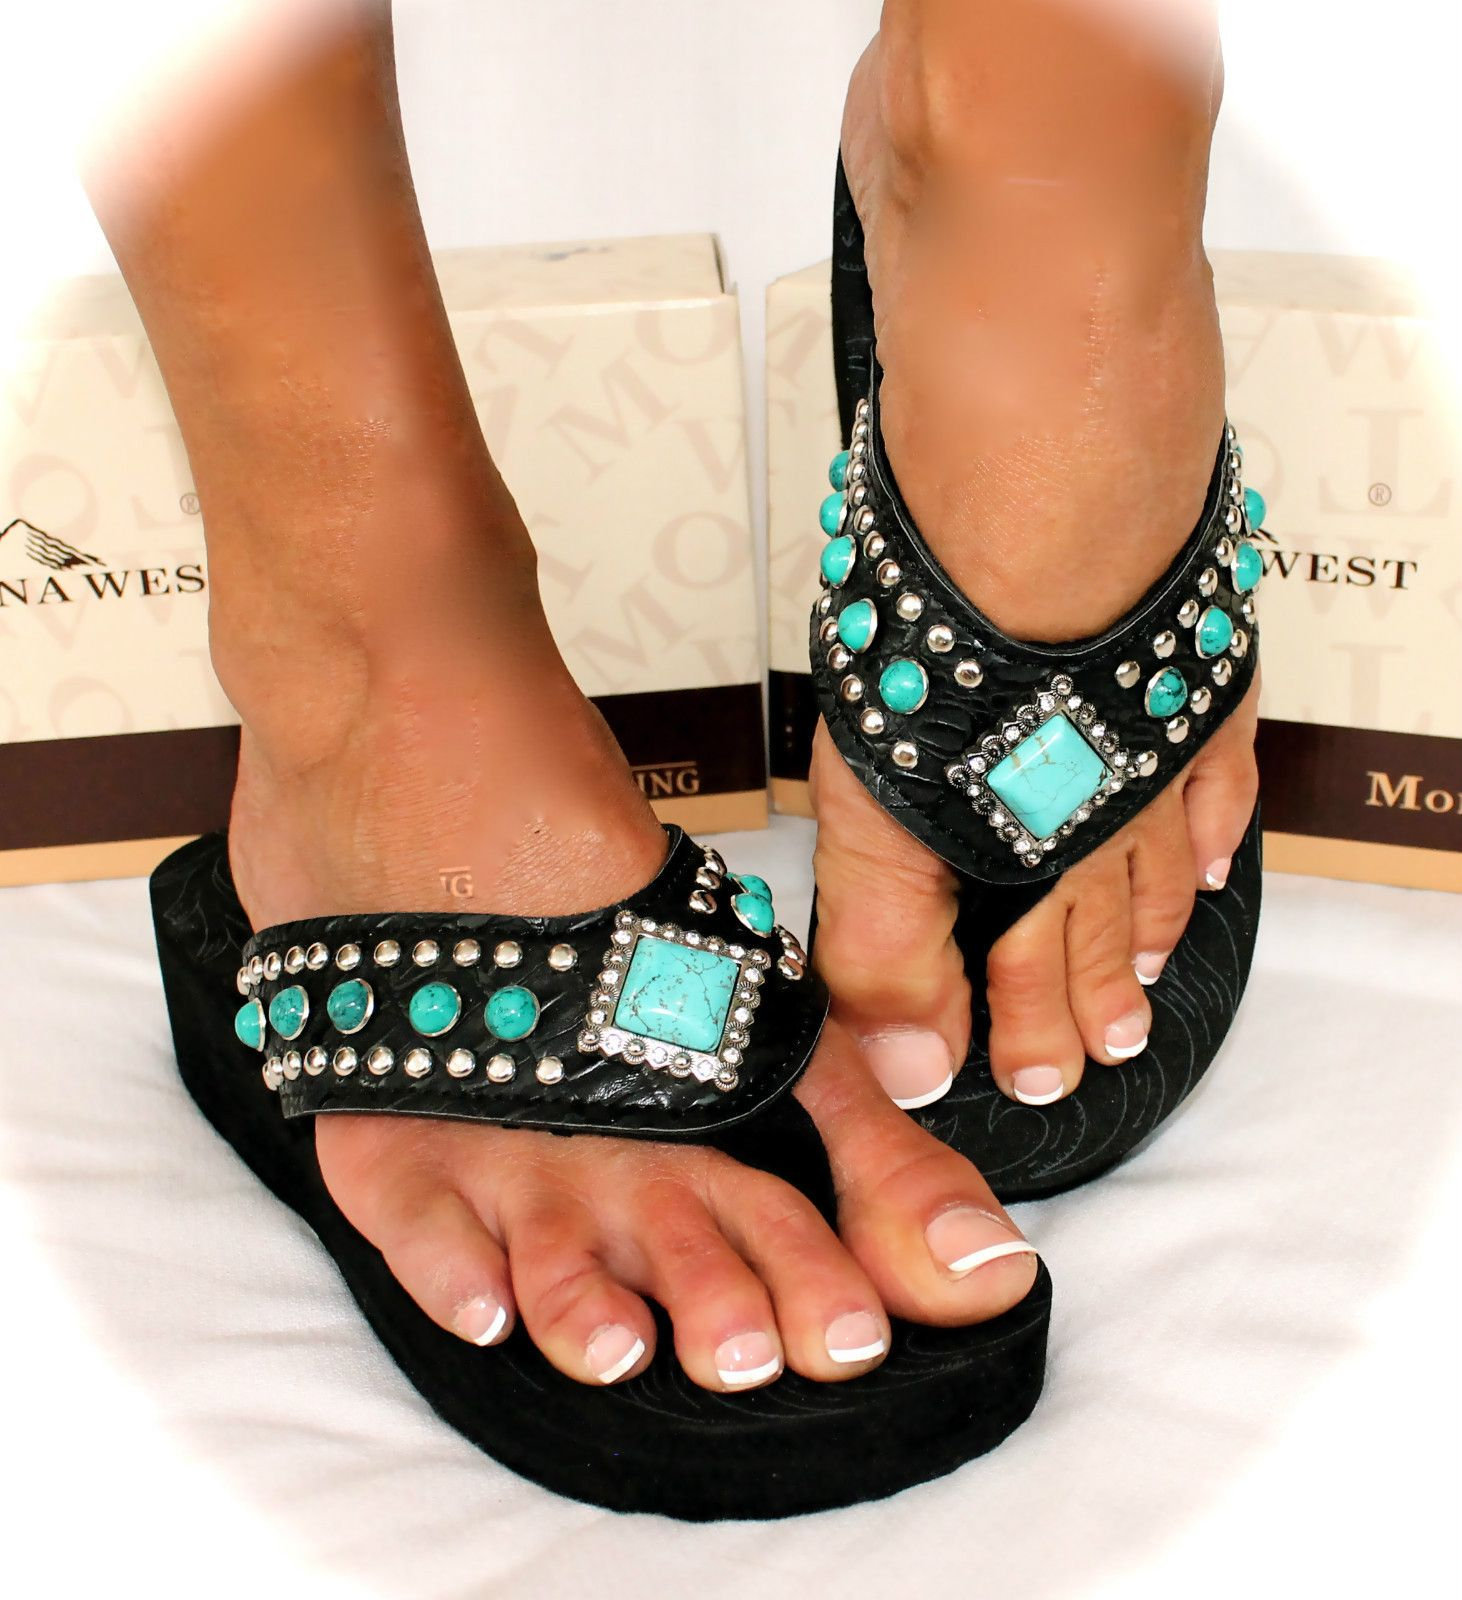 Black sandals bling - Details About Montana West Turquoise Conch Black Bling Western Wedge Flip Flops